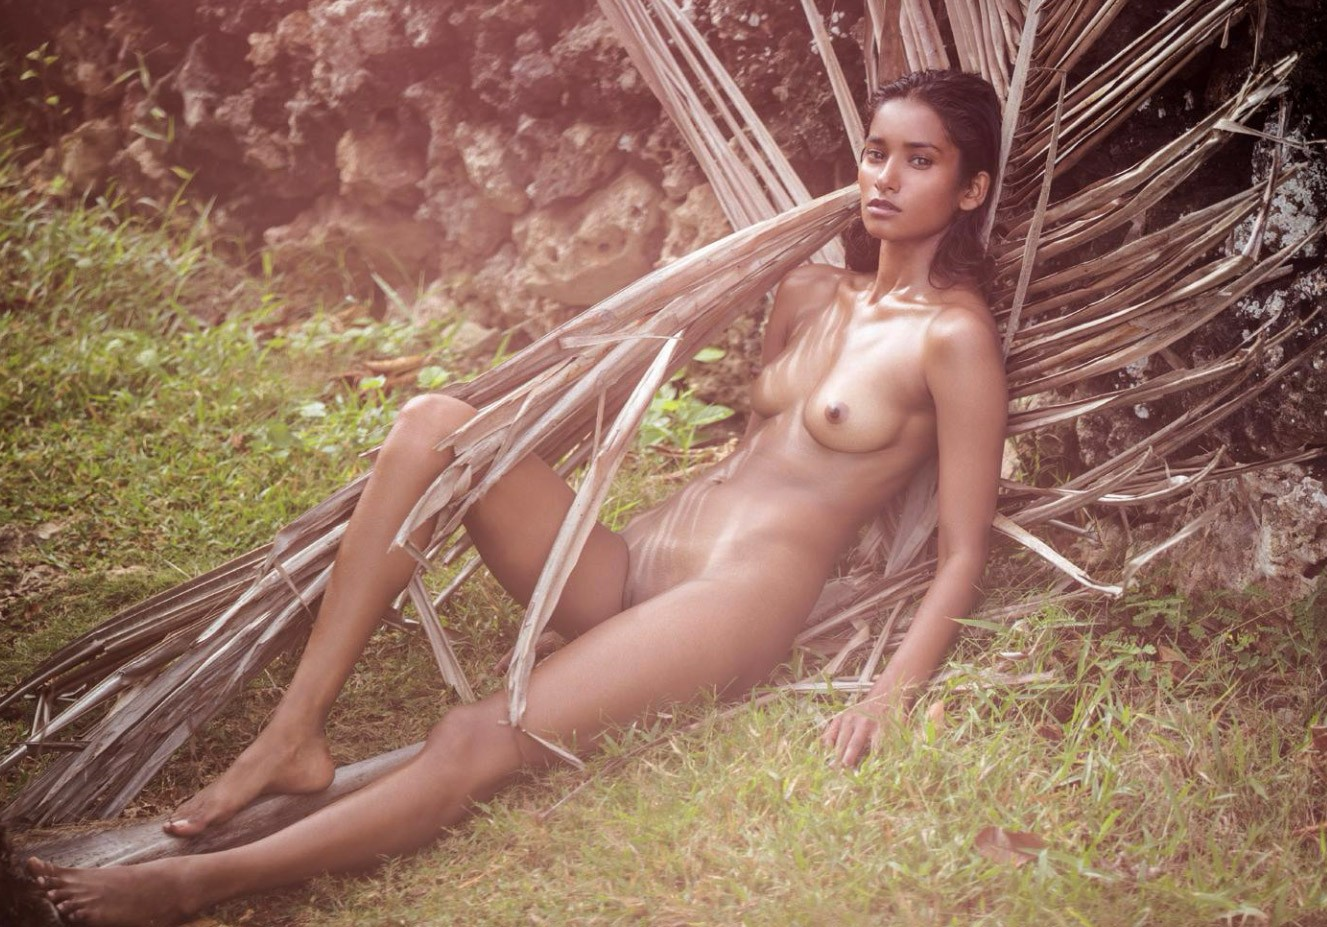 indian model Nidhi Sunil nude by David Bellemere - Treats! Magazine no12 summer 2017